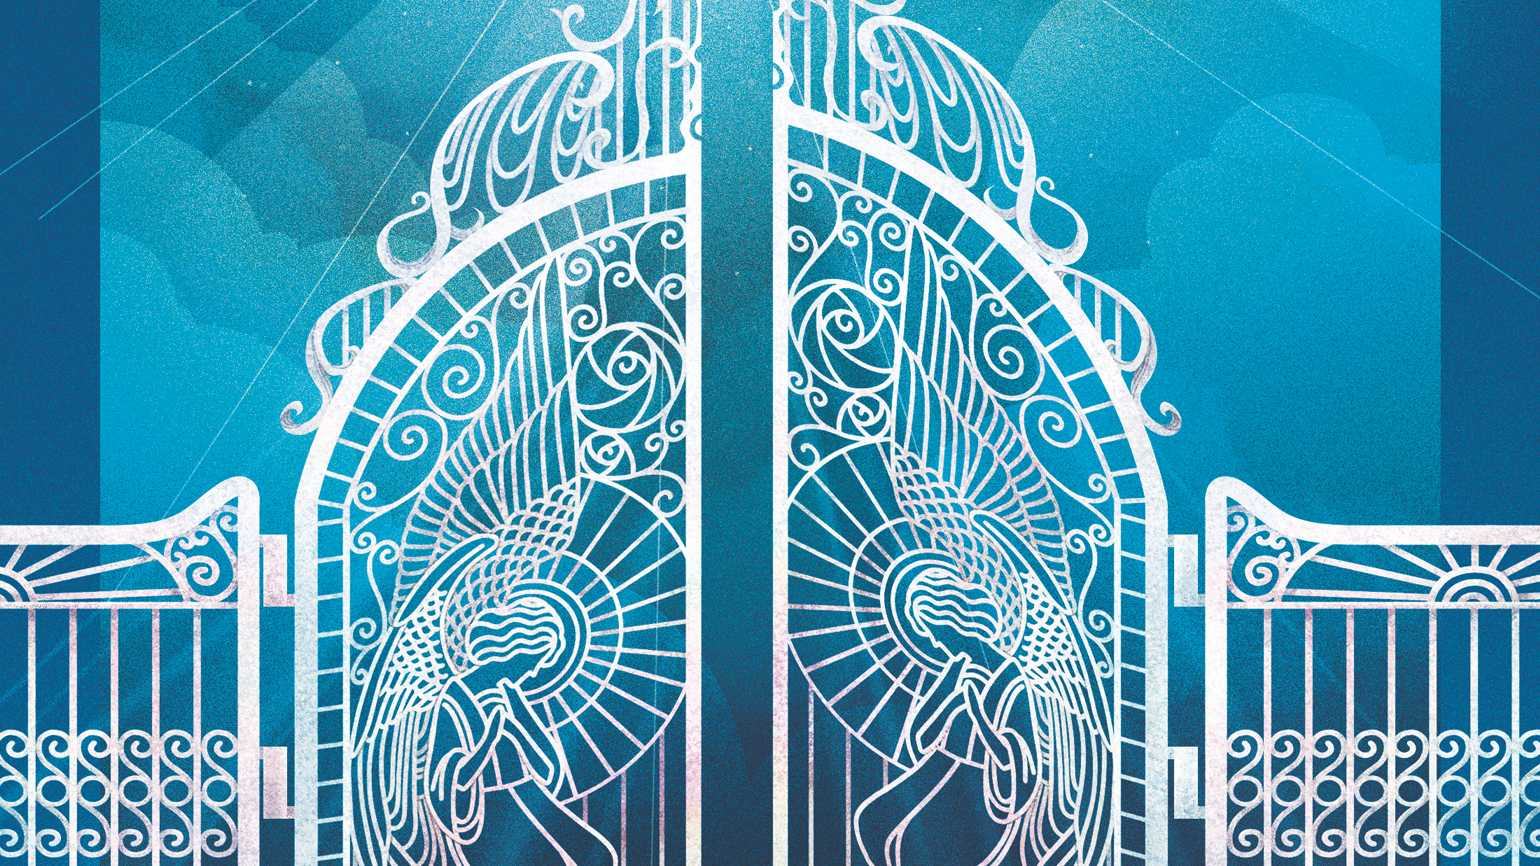 White gates with angels built inside; Illustration by Weitong Mai